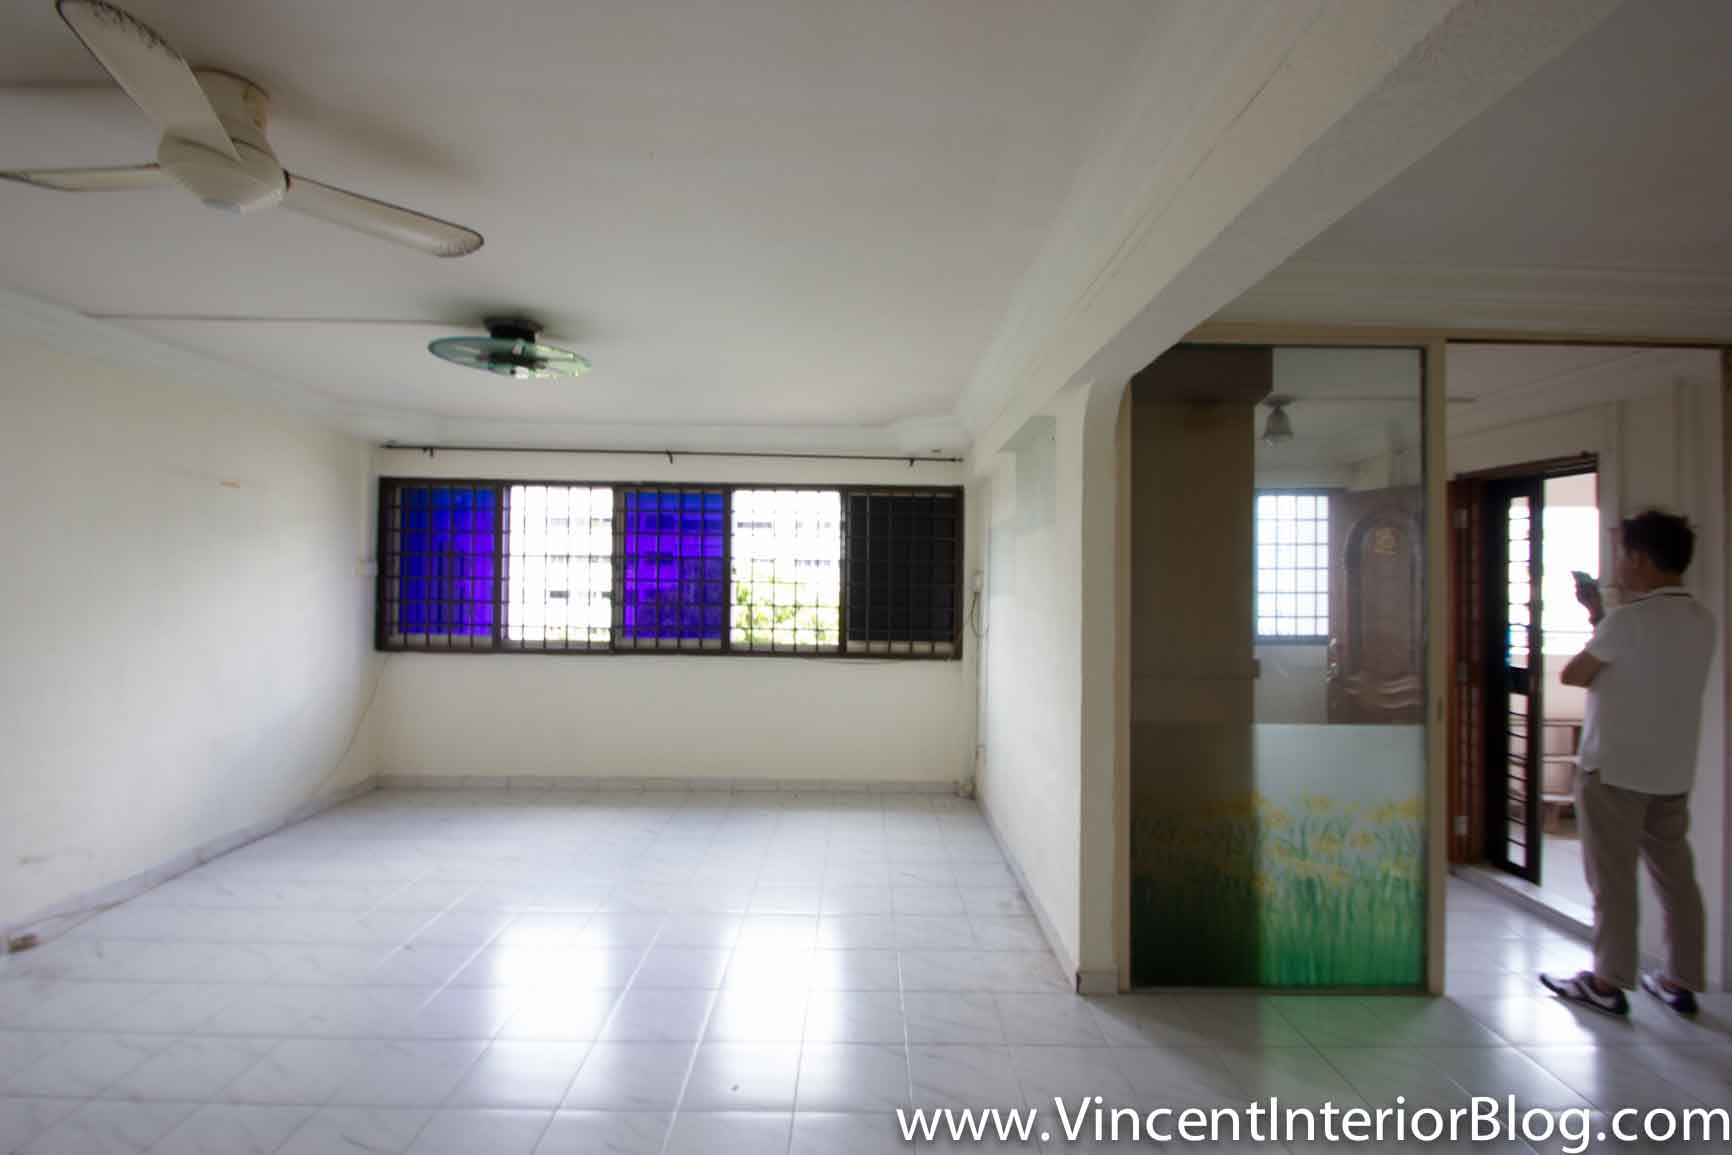 Bto 5 room interior design for Hdb 5 room interior design ideas